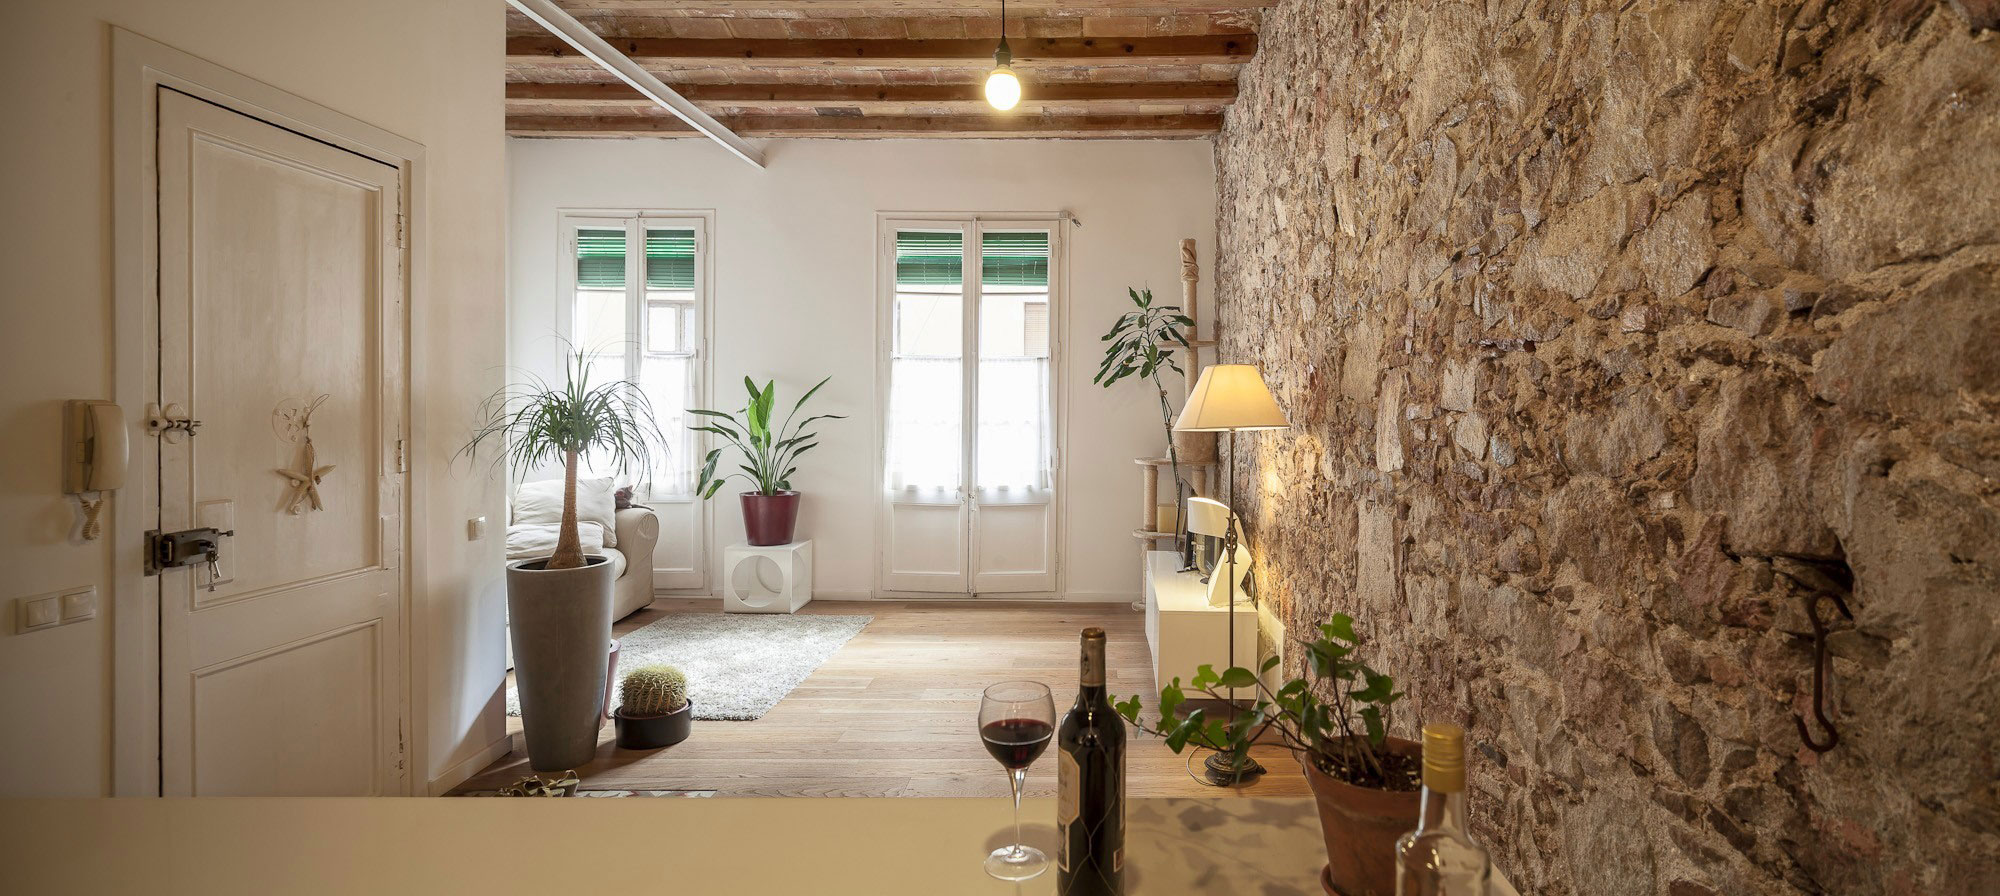 Renovation-Apartment-in-Les-Corts-living-room-windows